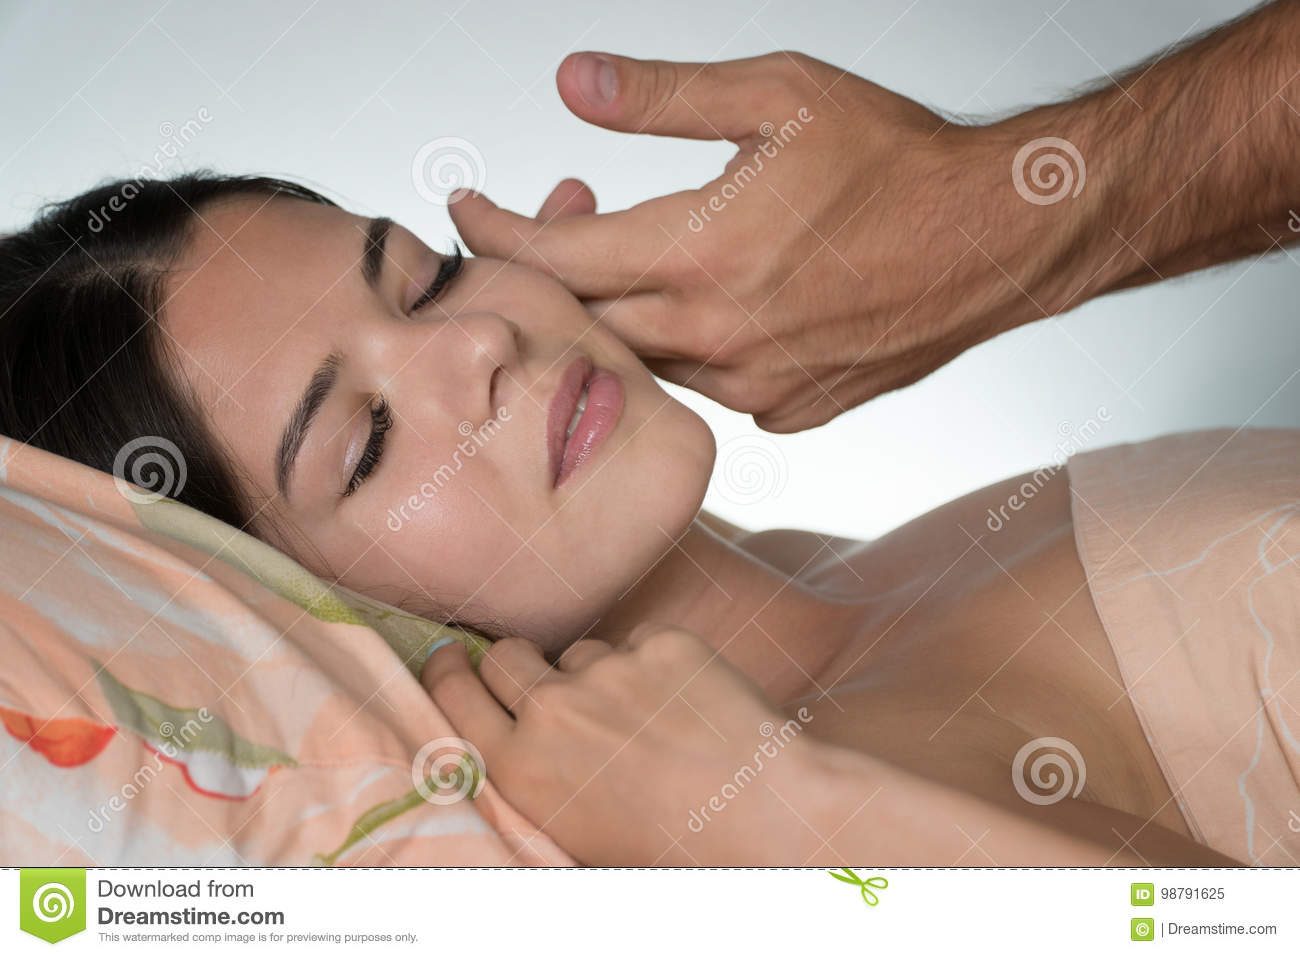 A man`s hand caresses the girl`s face in the morning. Morning awakening. Back of a blurred white background